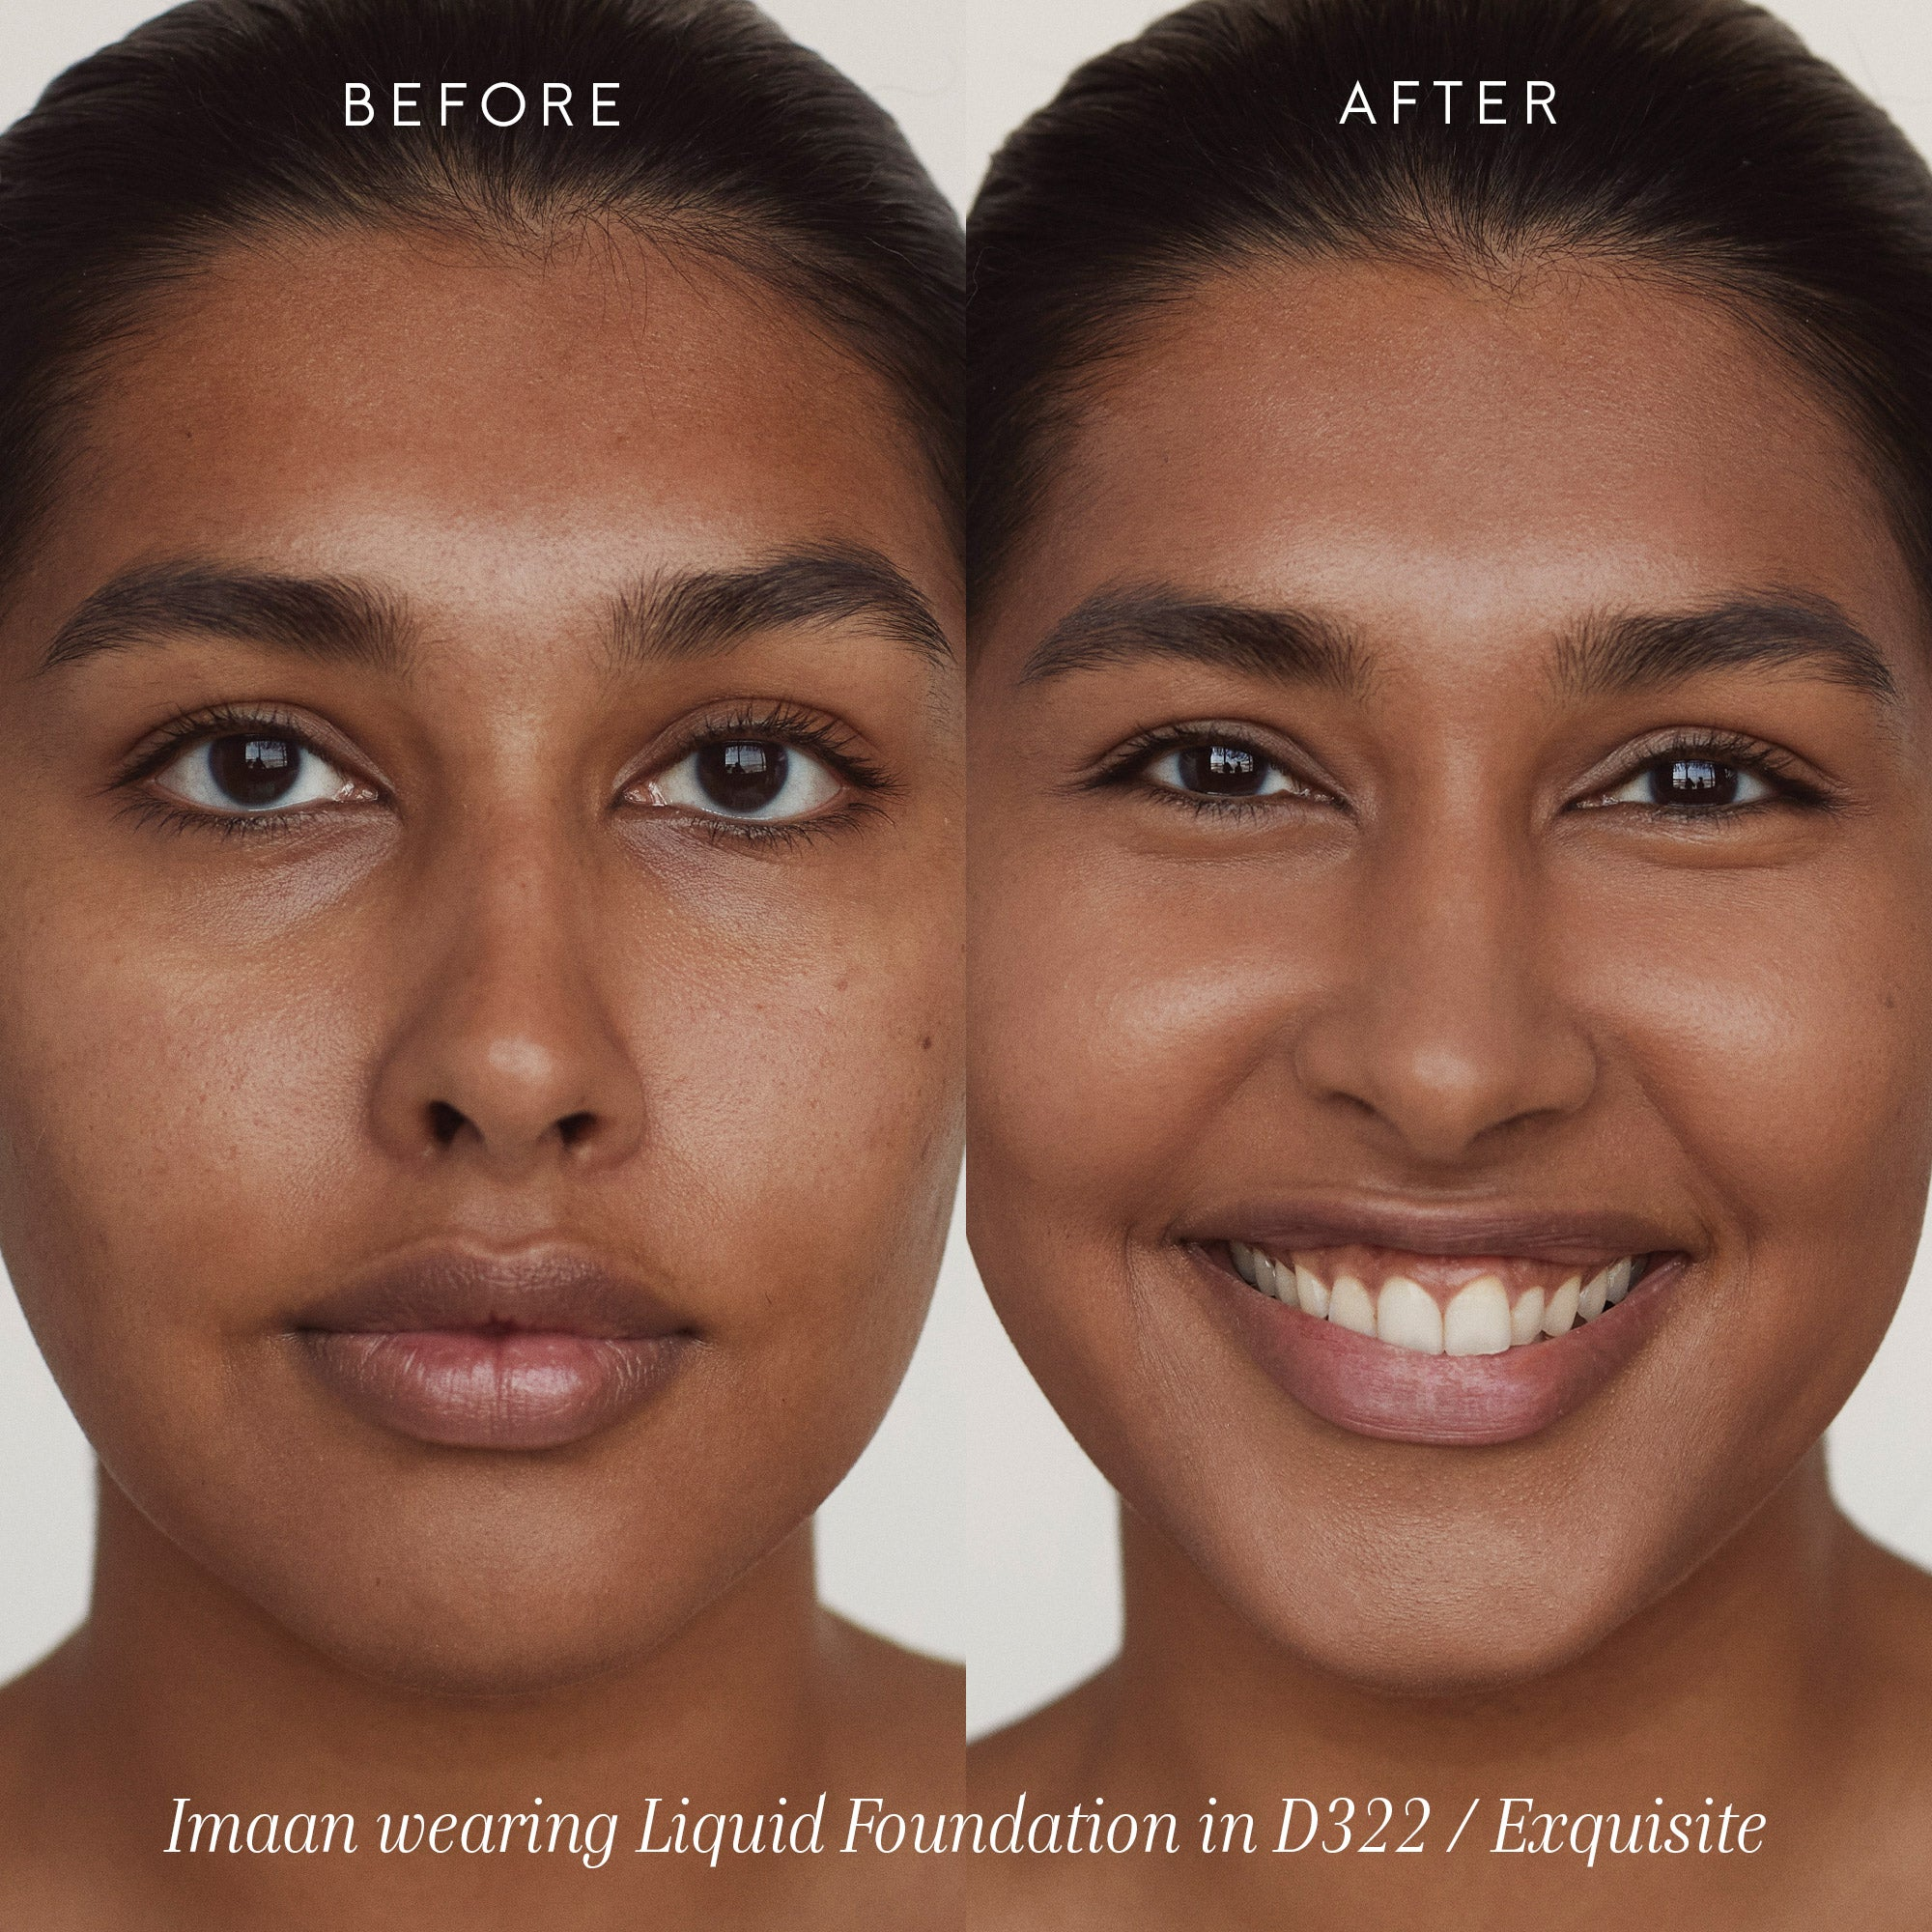 Kjaer-Weis-Invisible-Touch-Liquid-Foundation-Before-and-After-D322-Exquisite